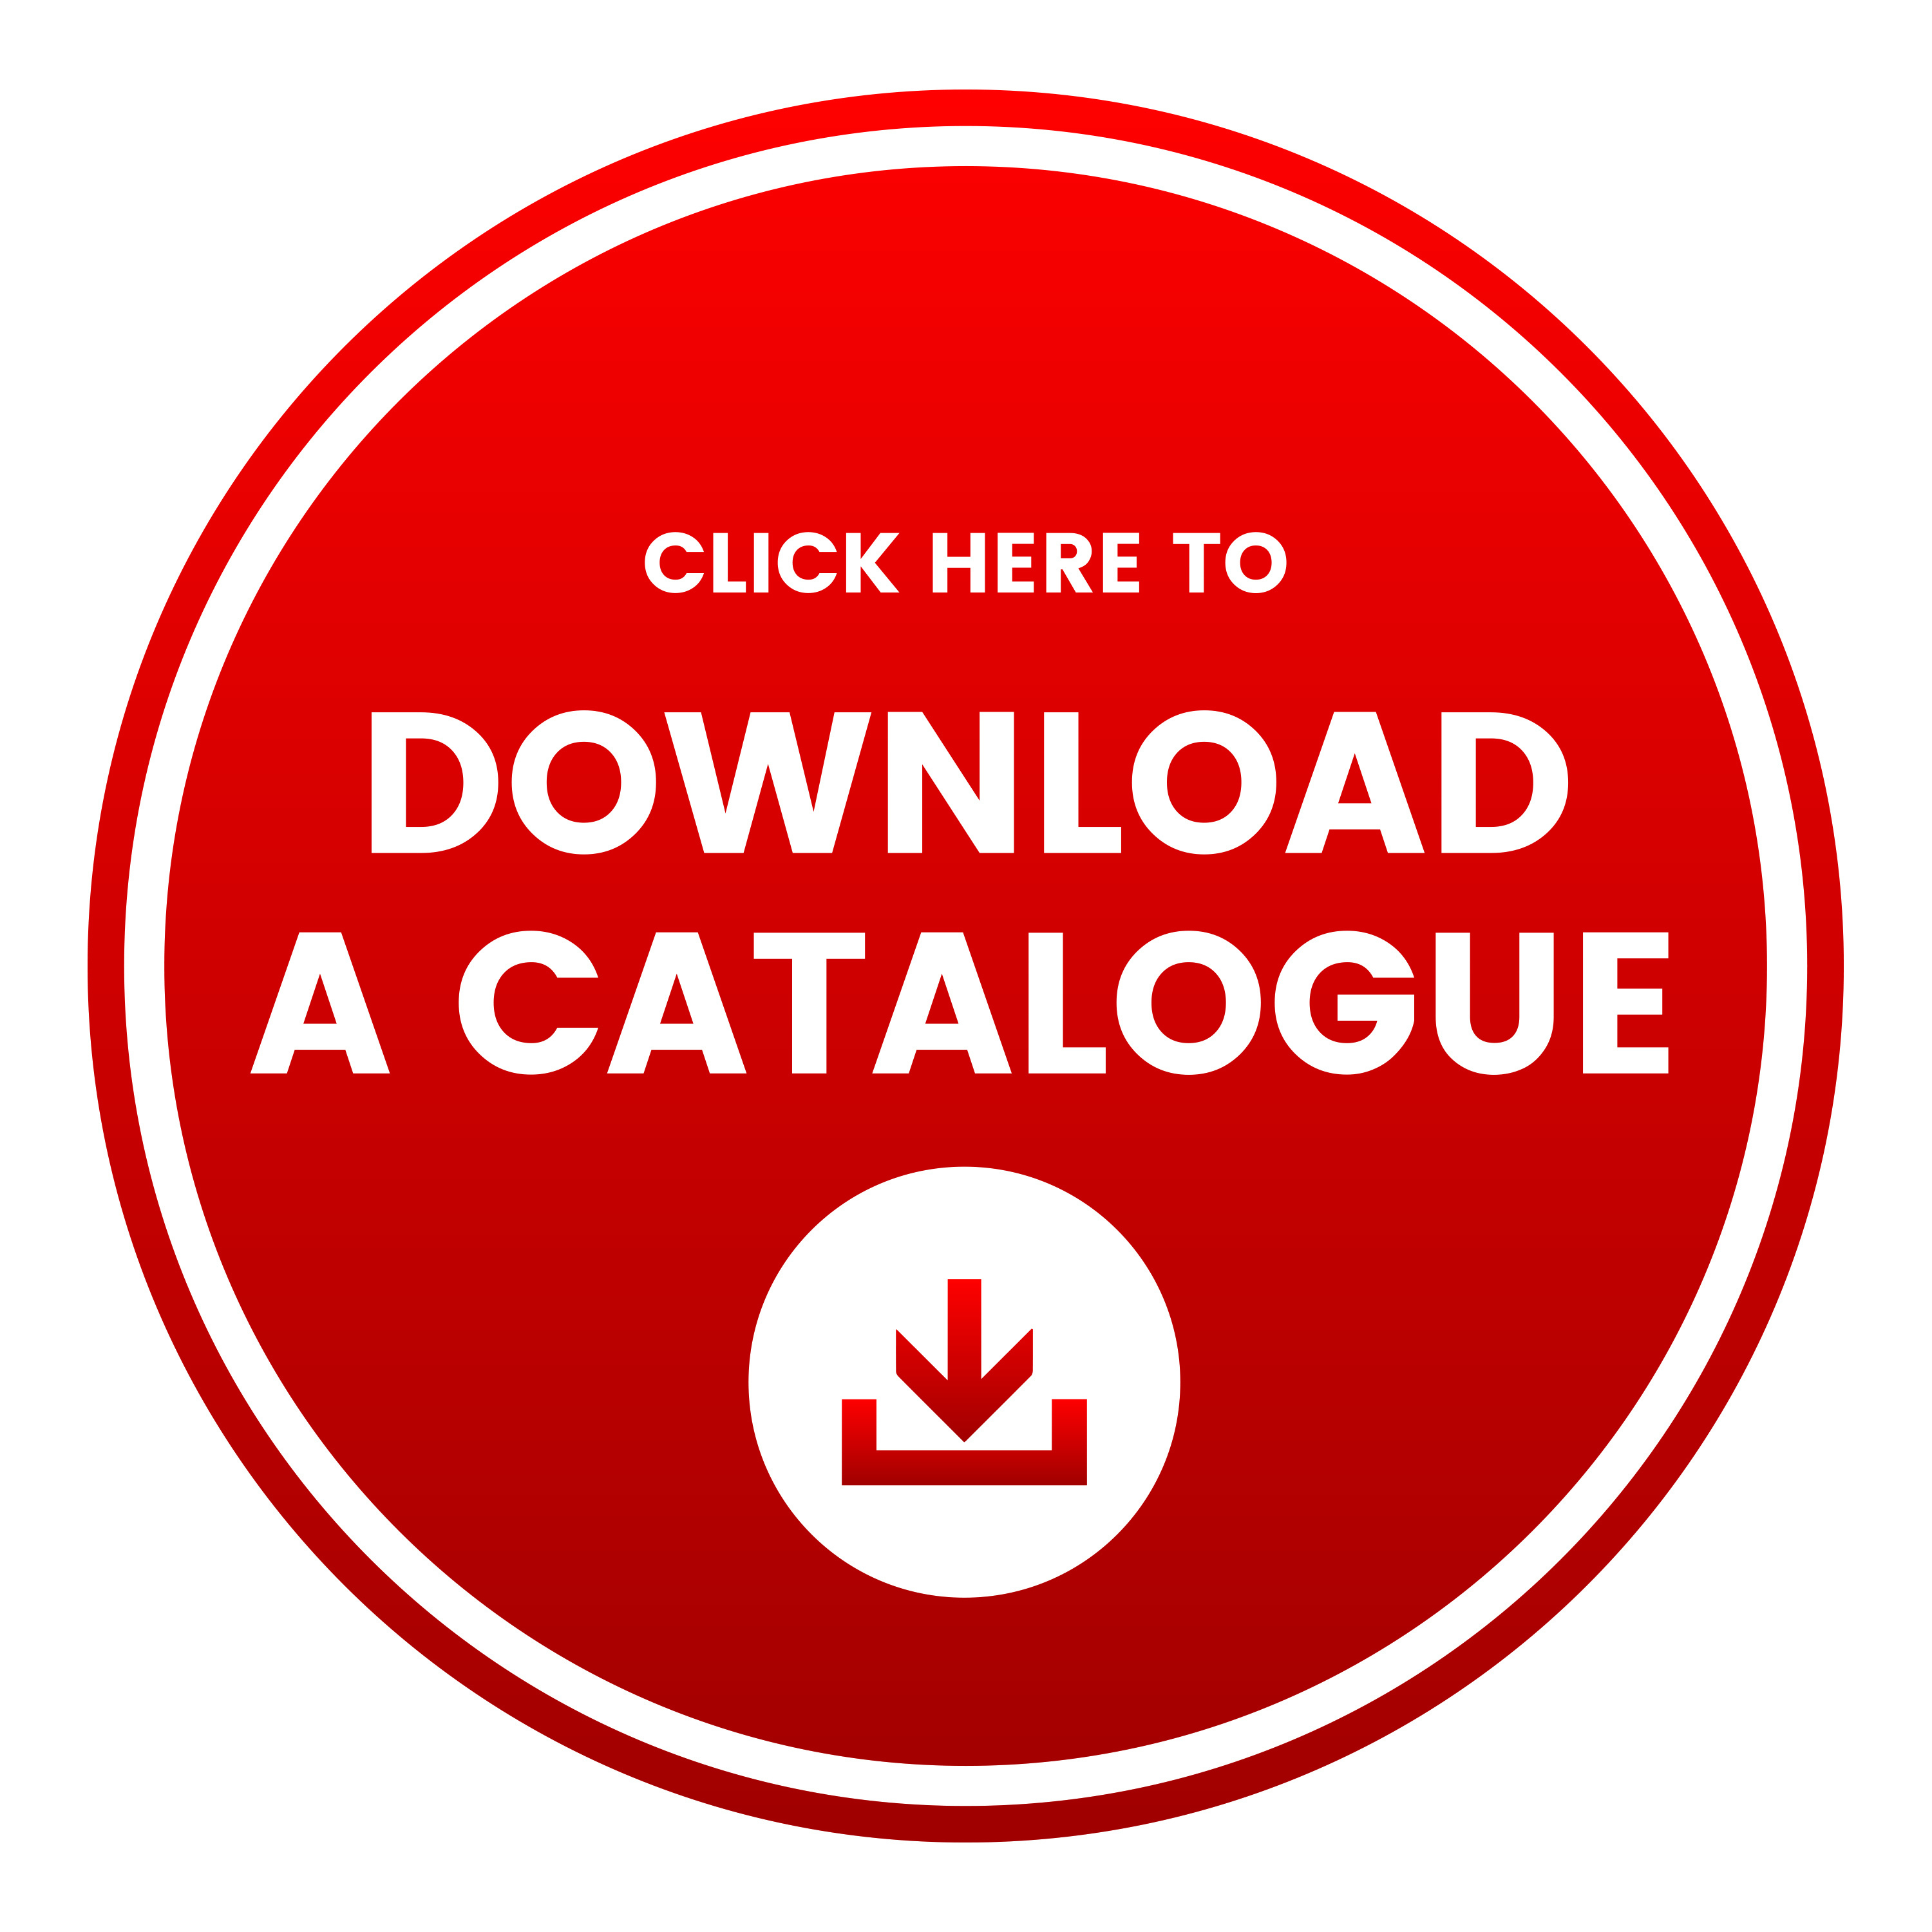 Catalog for replacement parts for boat and utility trailers.